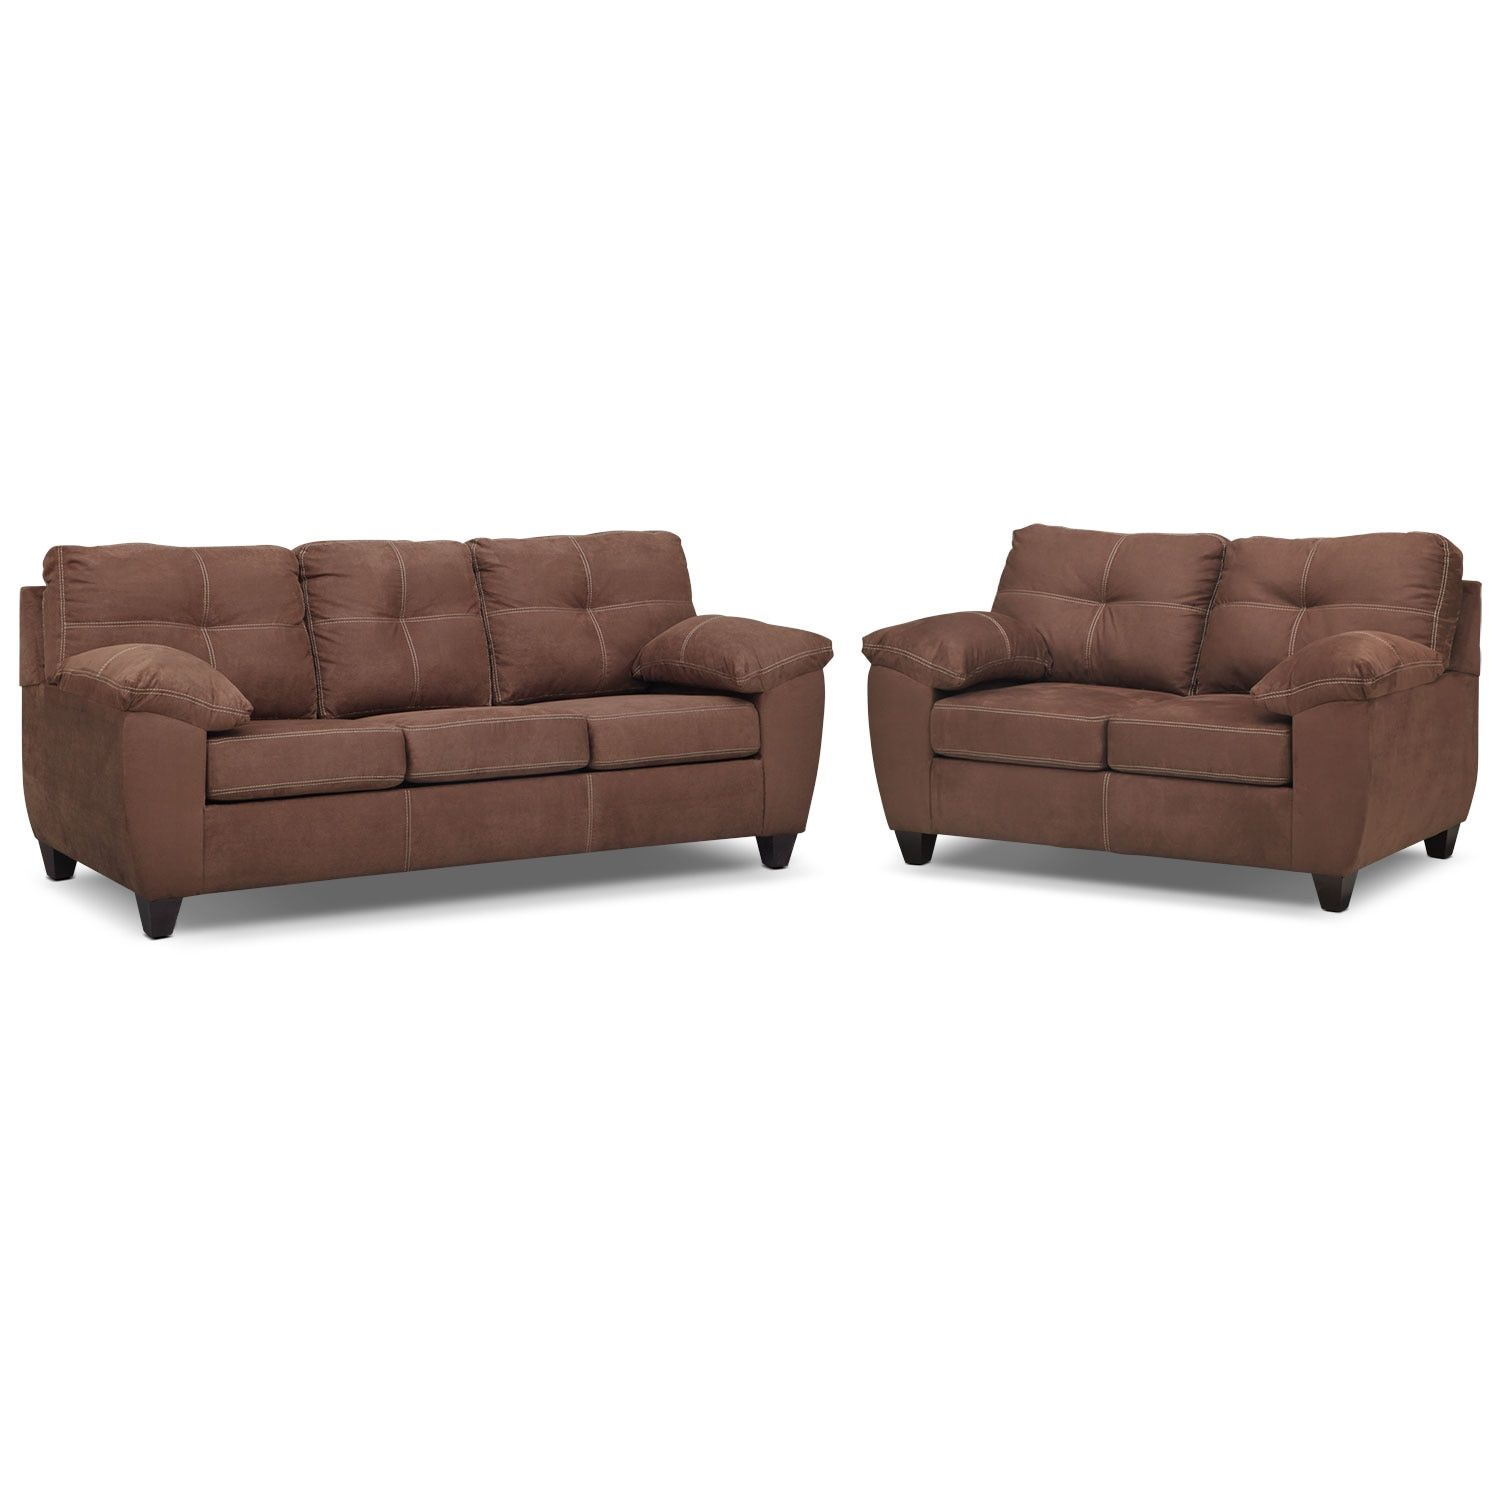 Ricardo Queen Memory Foam Sleeper Sofa And Loveseat Set Coffee